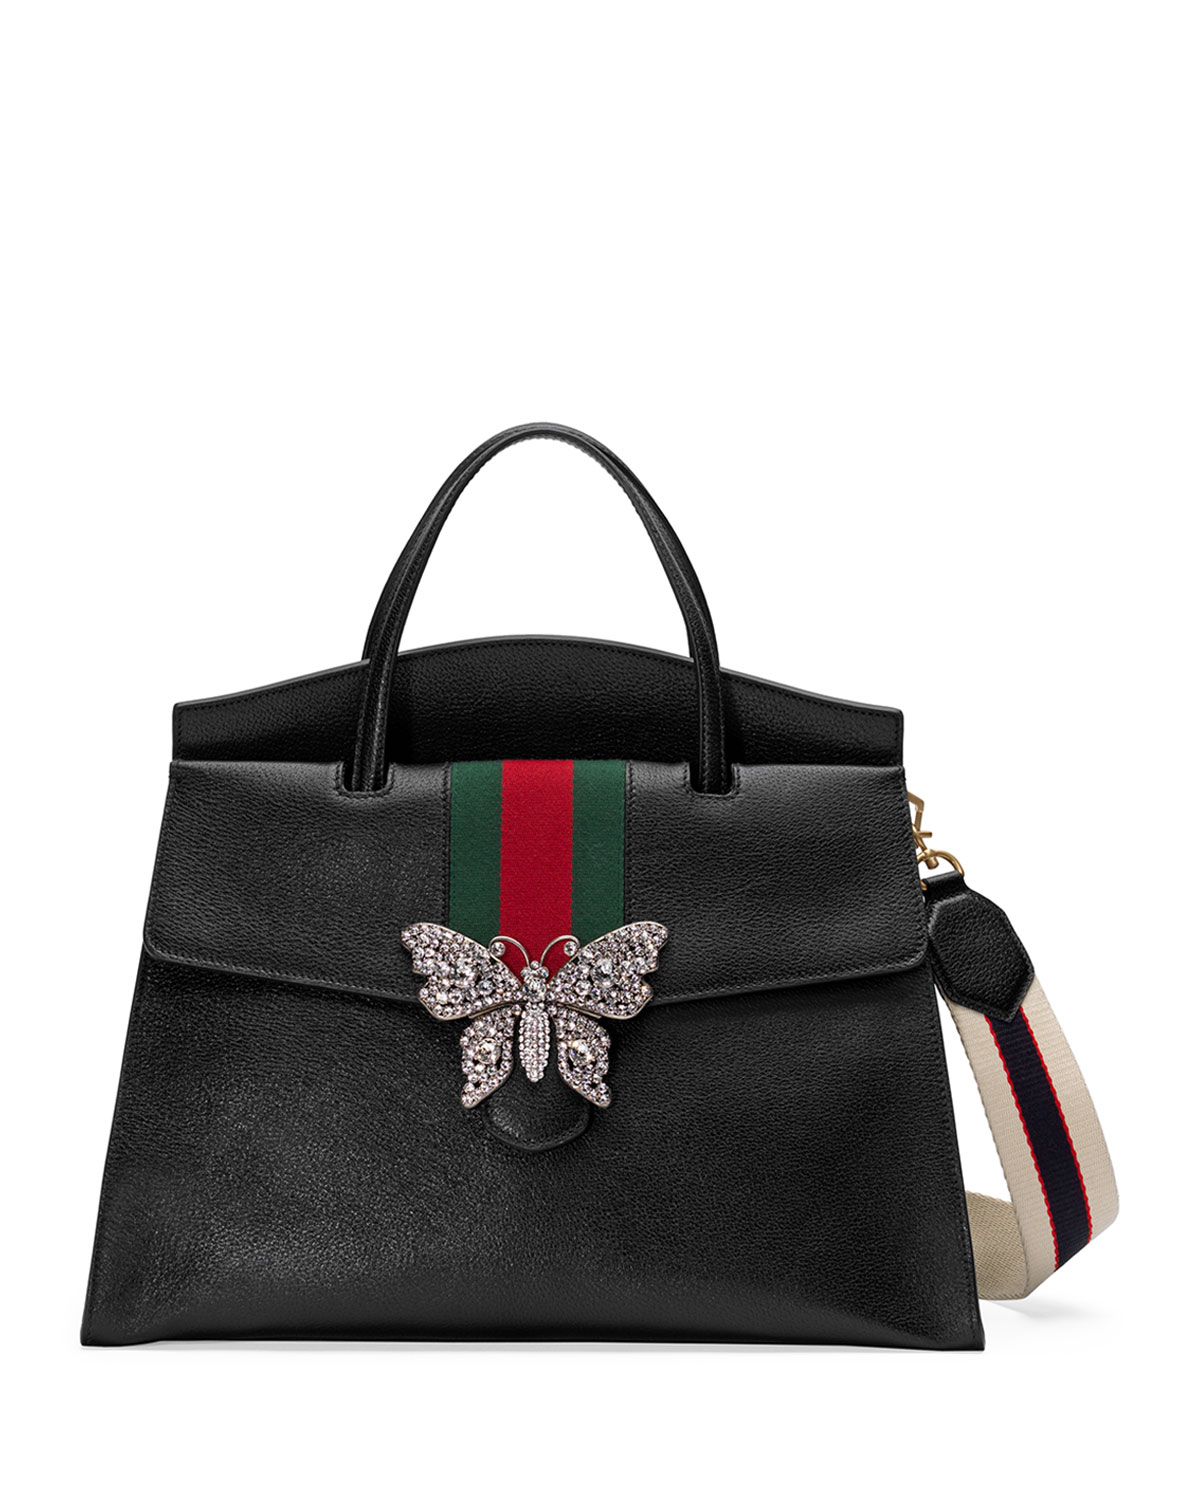 19629be2ec8 Gucci Linea Totem Large Leather Top-Handle Bag with Butterfly   Web Strap